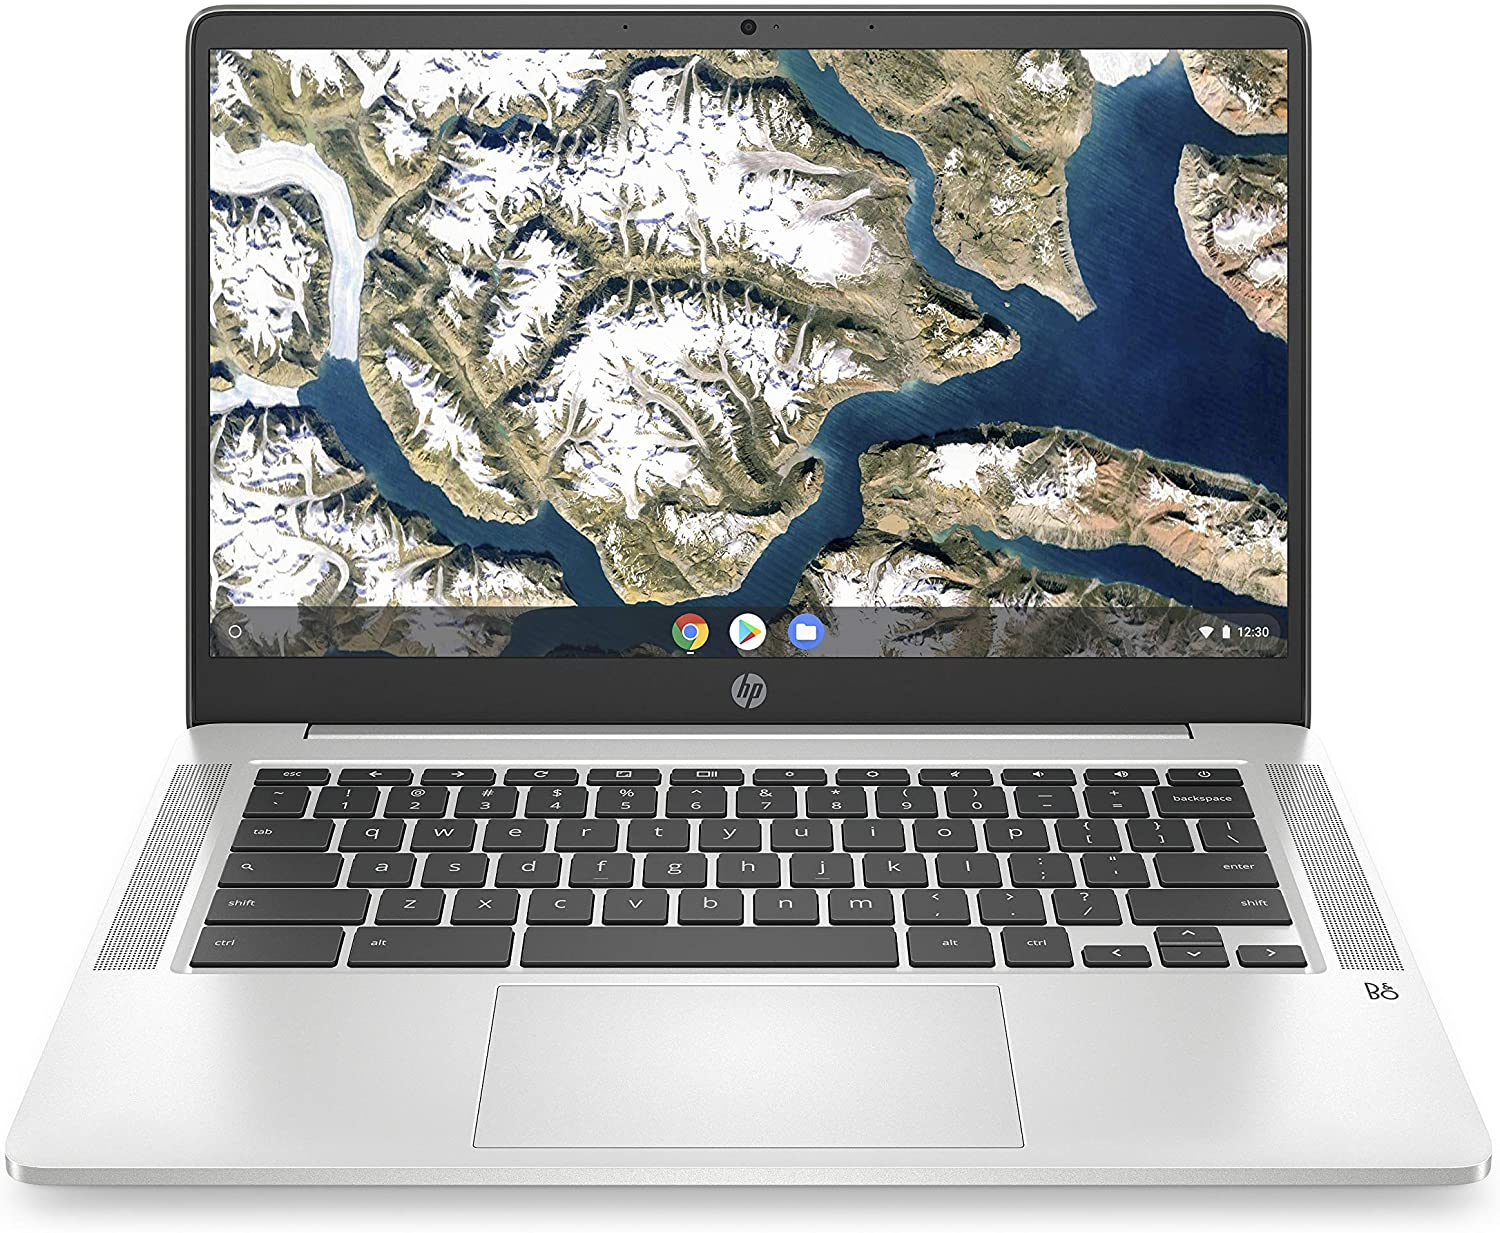 HP Chromebook 14-inch FHD Laptop, Intel Celeron N4000, 4 GB RAM, 32 GB eMMC, Chrome (14a-na0050nr, Mineral Silver)